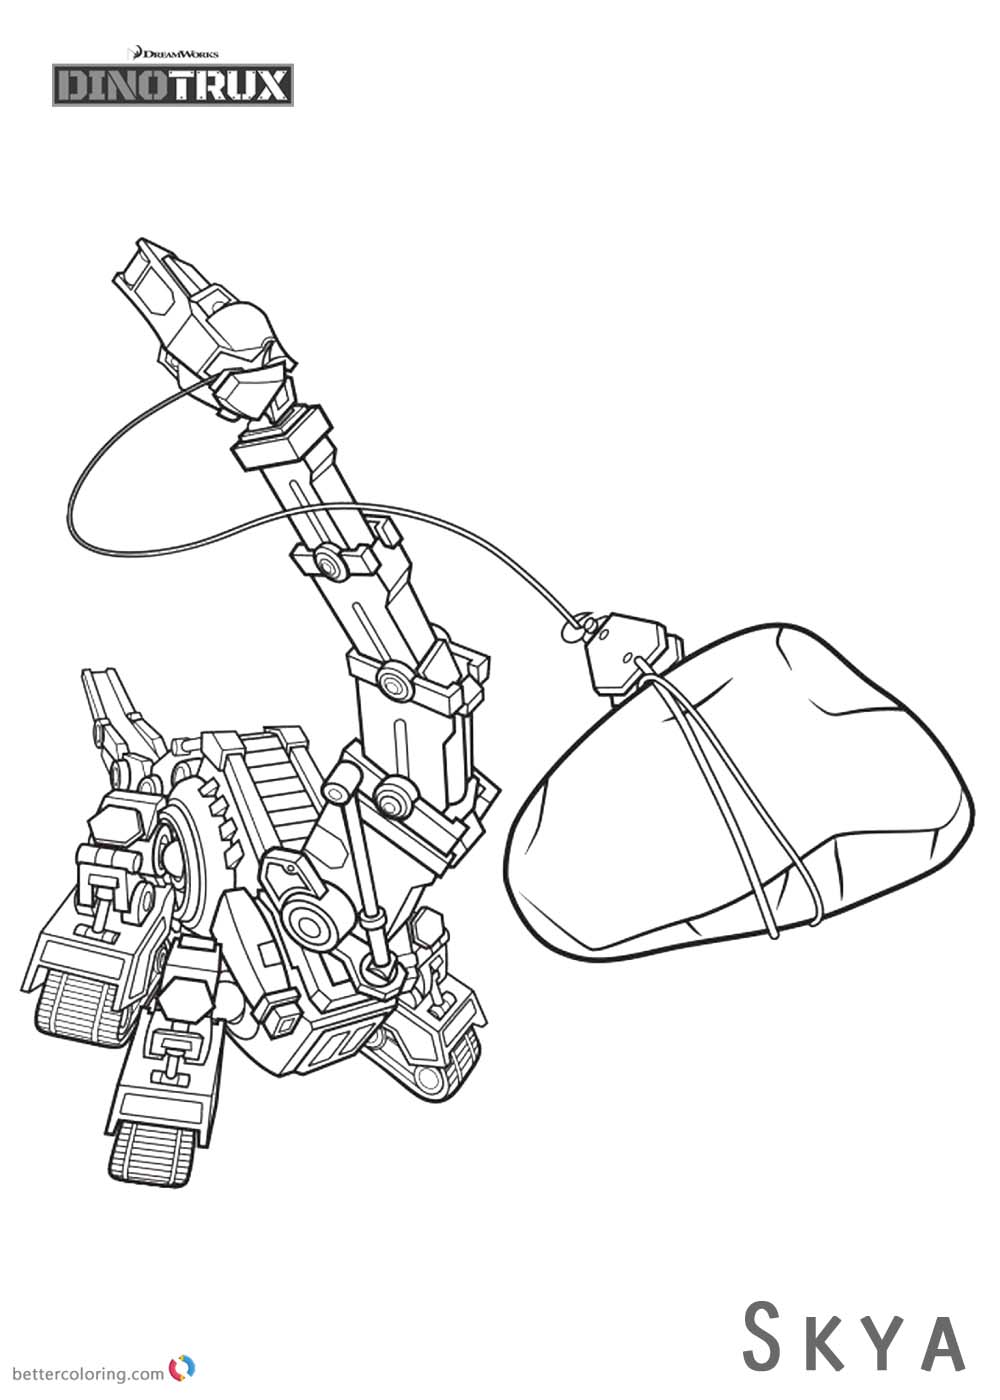 Dinotrux coloring pages Skya working printable